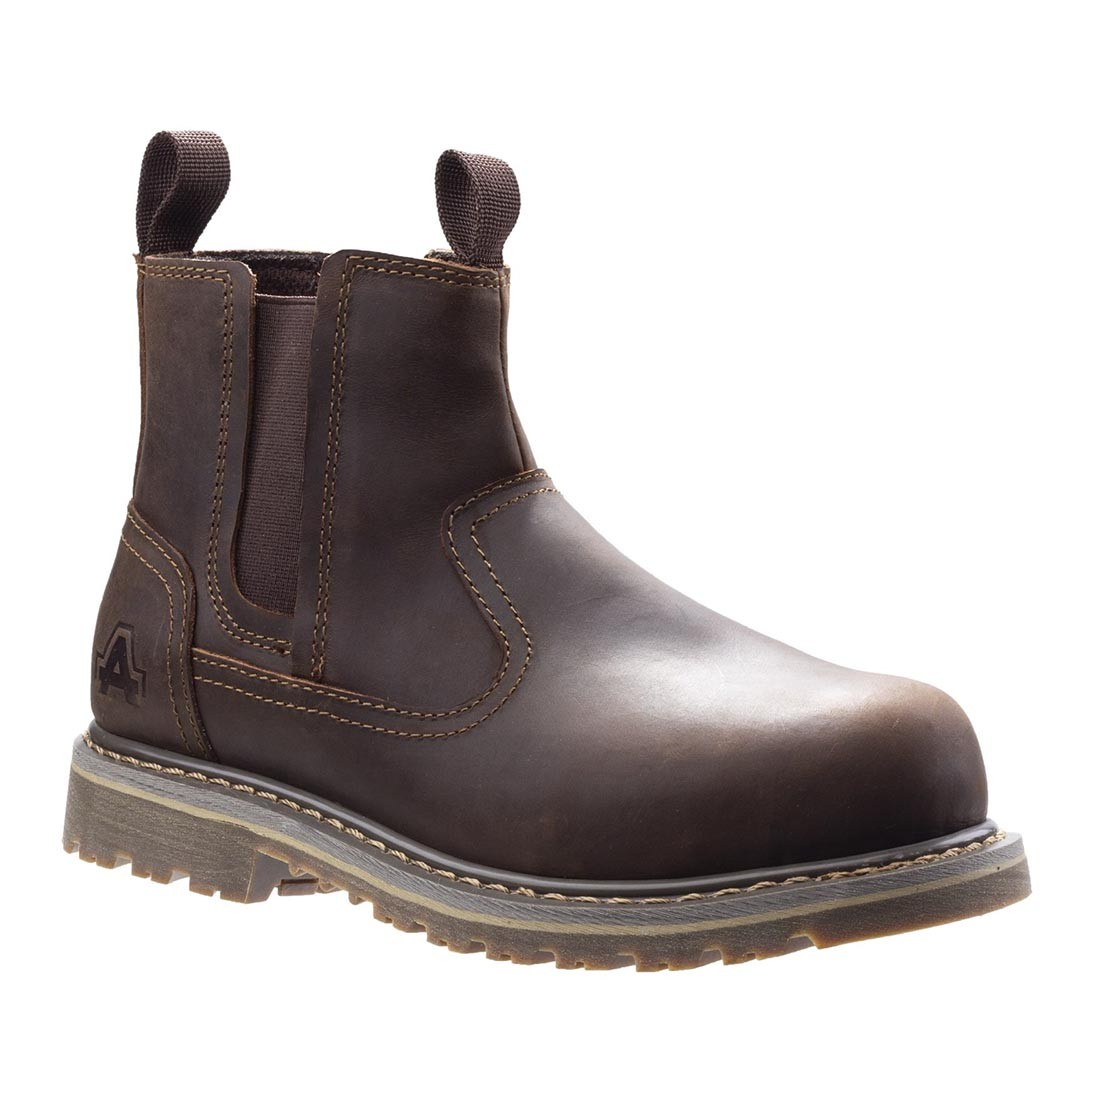 Amblers Alice Brown Leather Welted Ladies Safety Dealer Work Boots